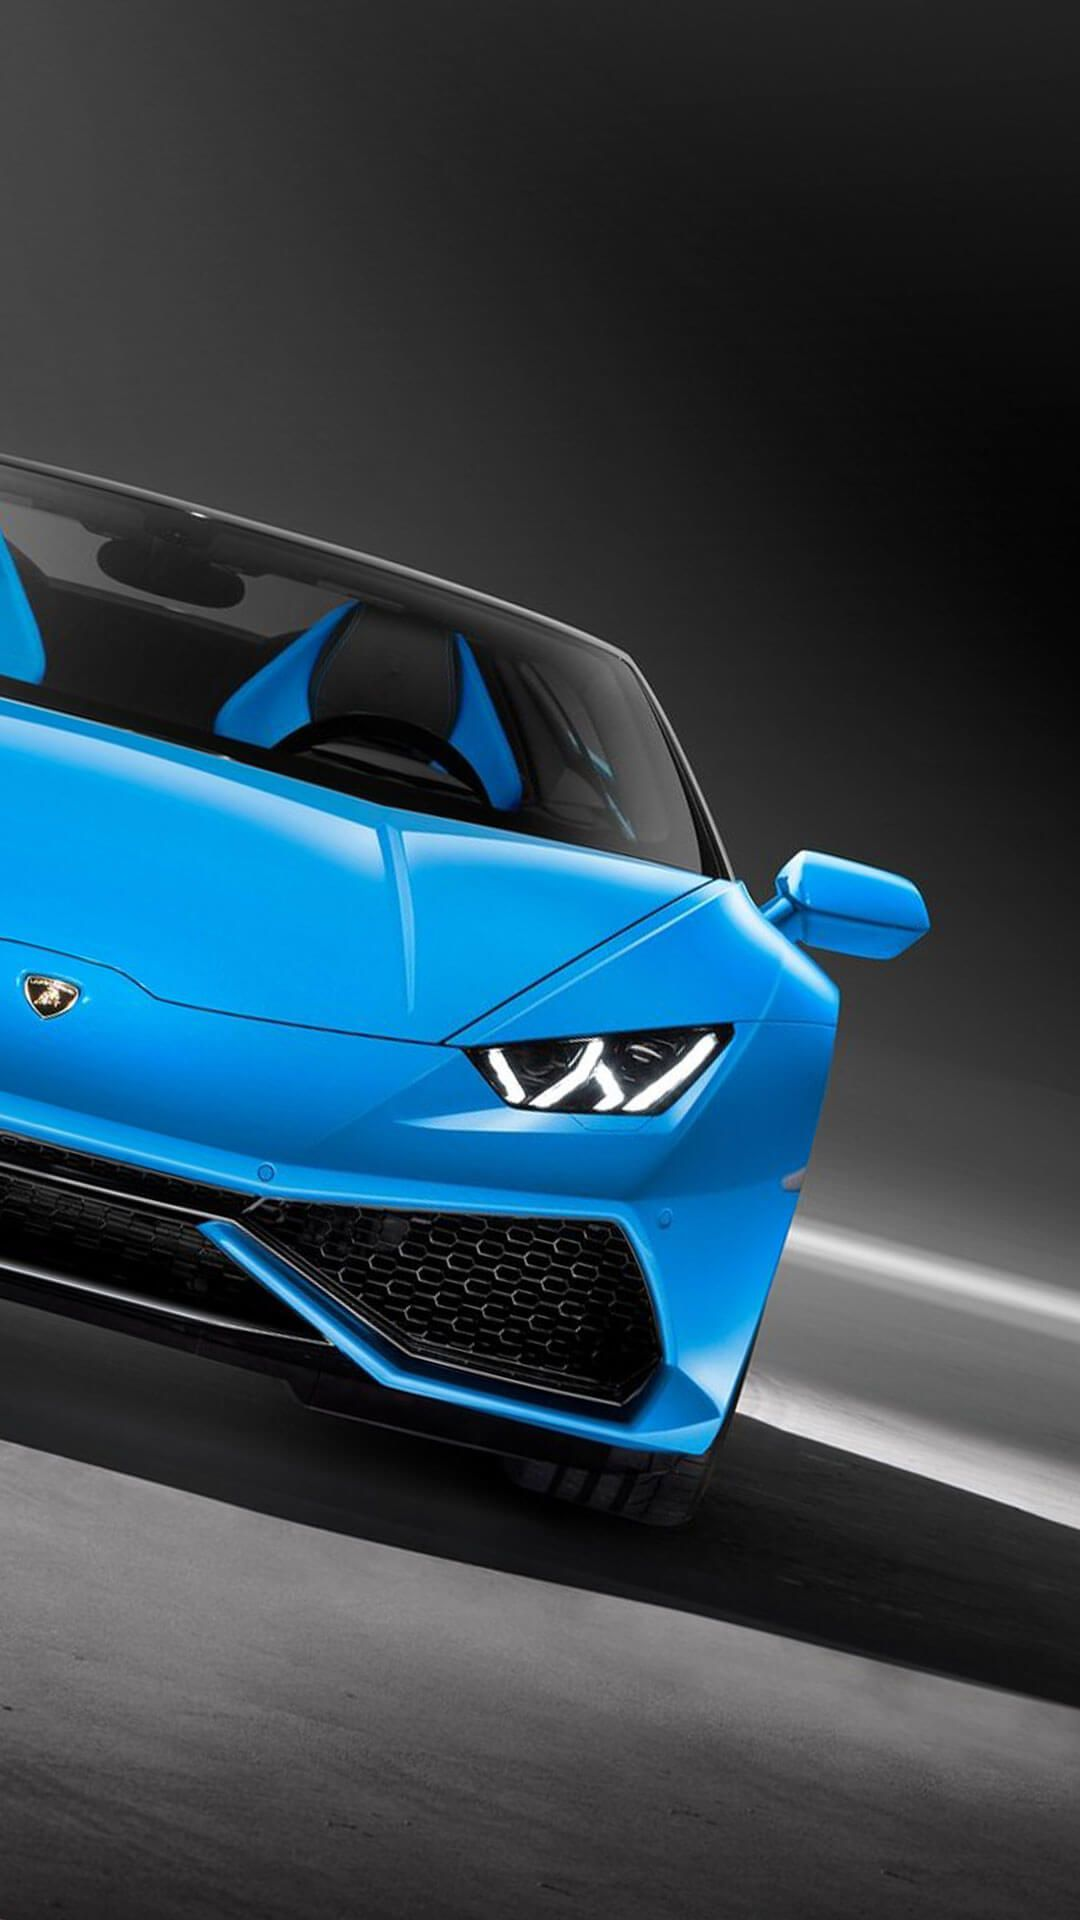 Blue Lambo Wallpapers Top Free Blue Lambo Backgrounds